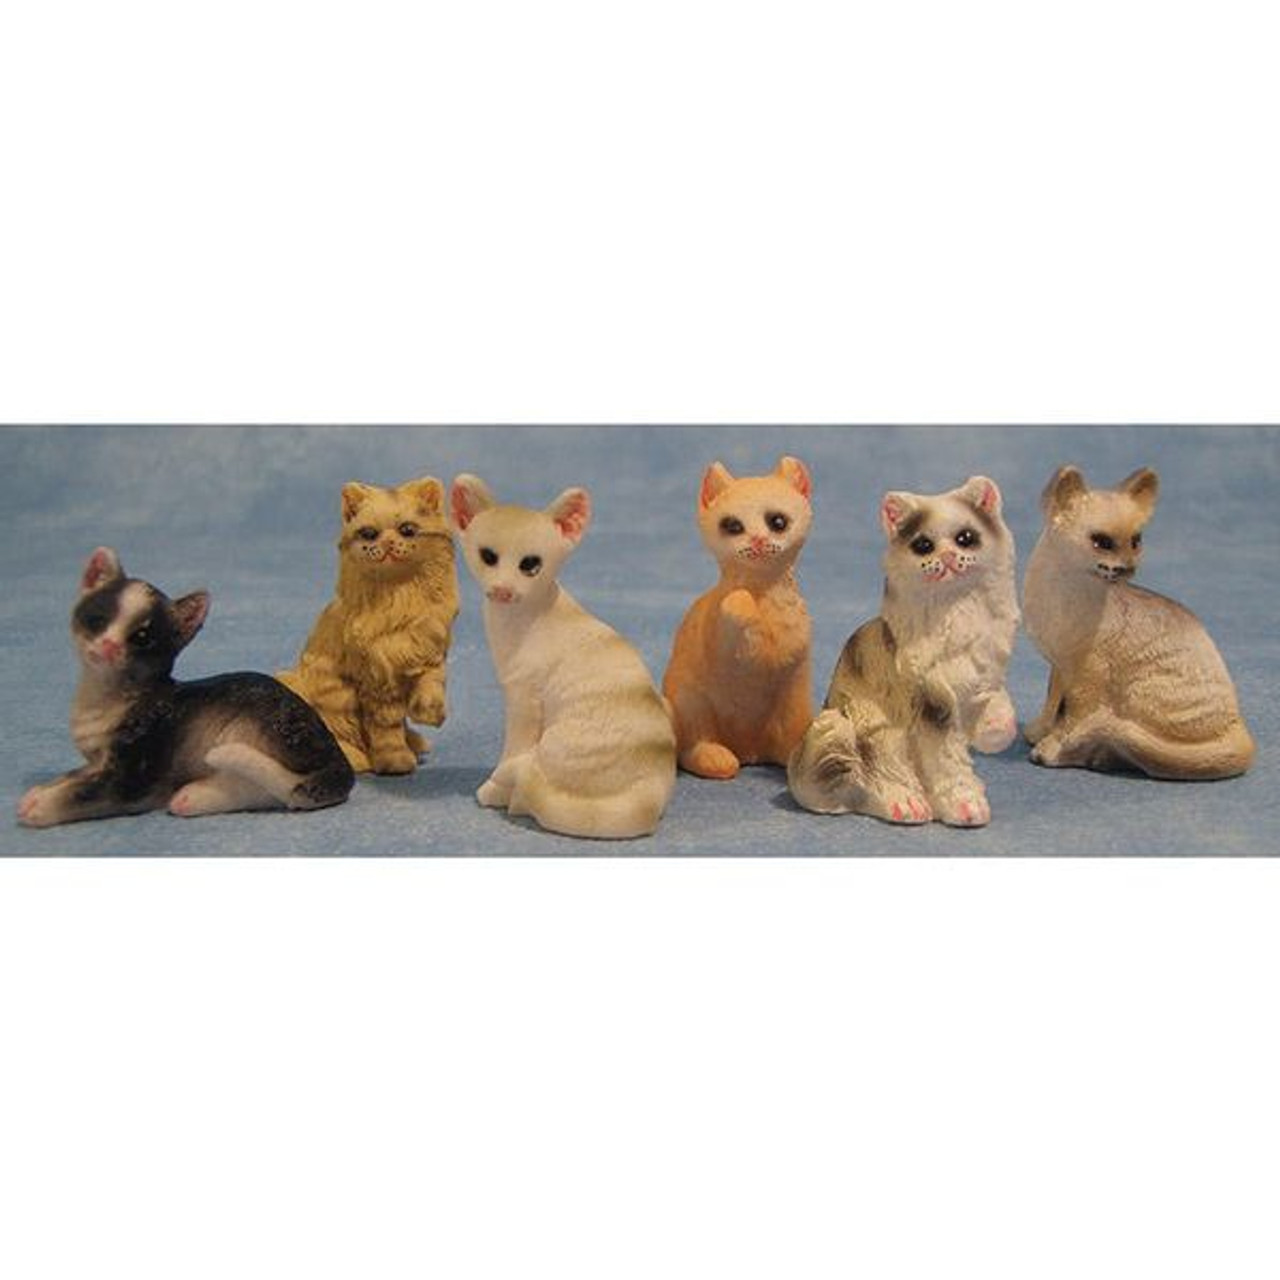 Assorted tiny cats, 1 piece 8/973